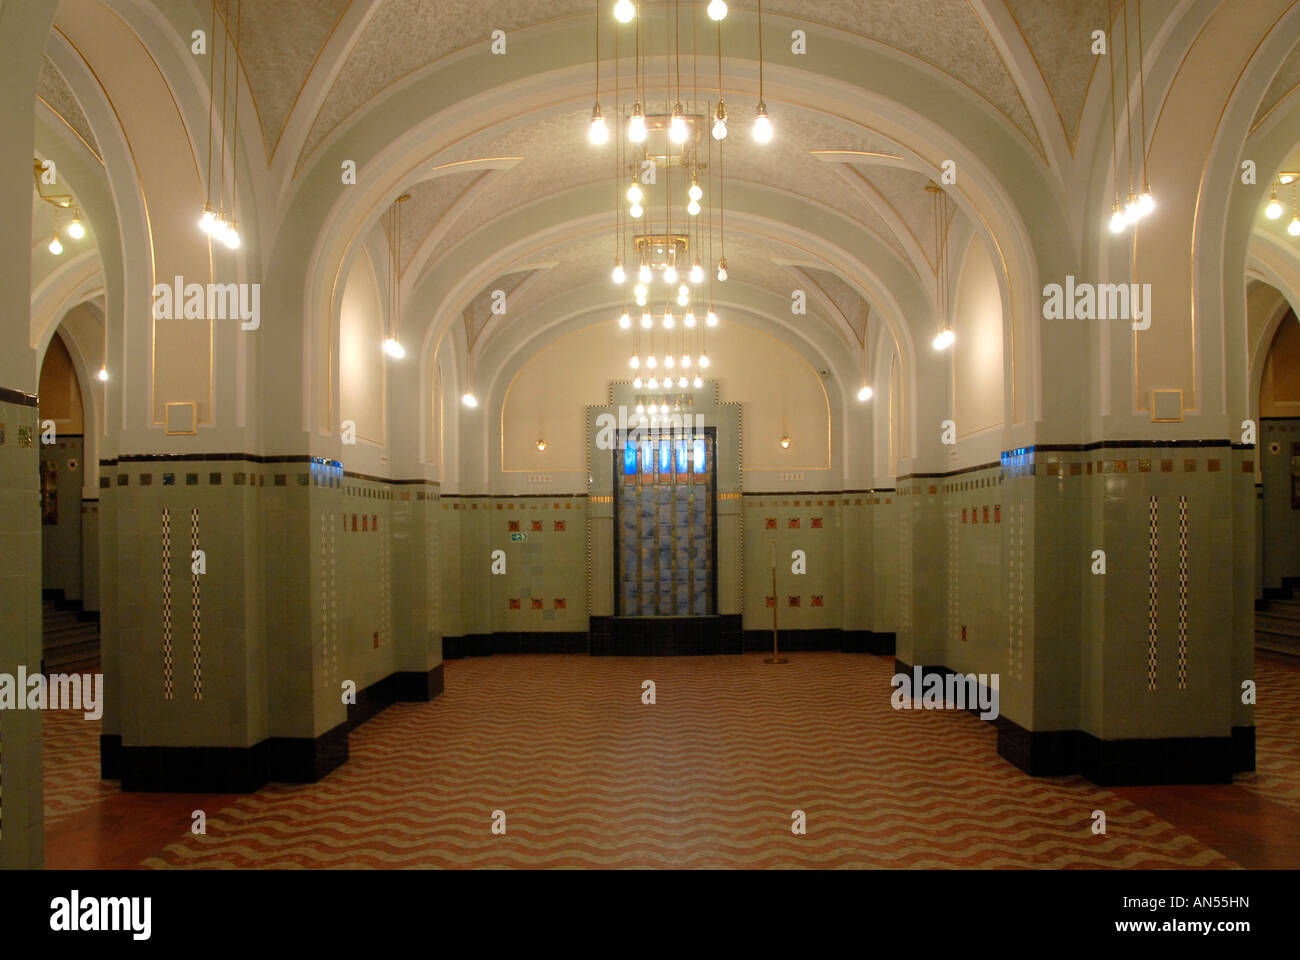 Concert Hall Interior Stockfotos & Concert Hall Interior Bilder - Alamy